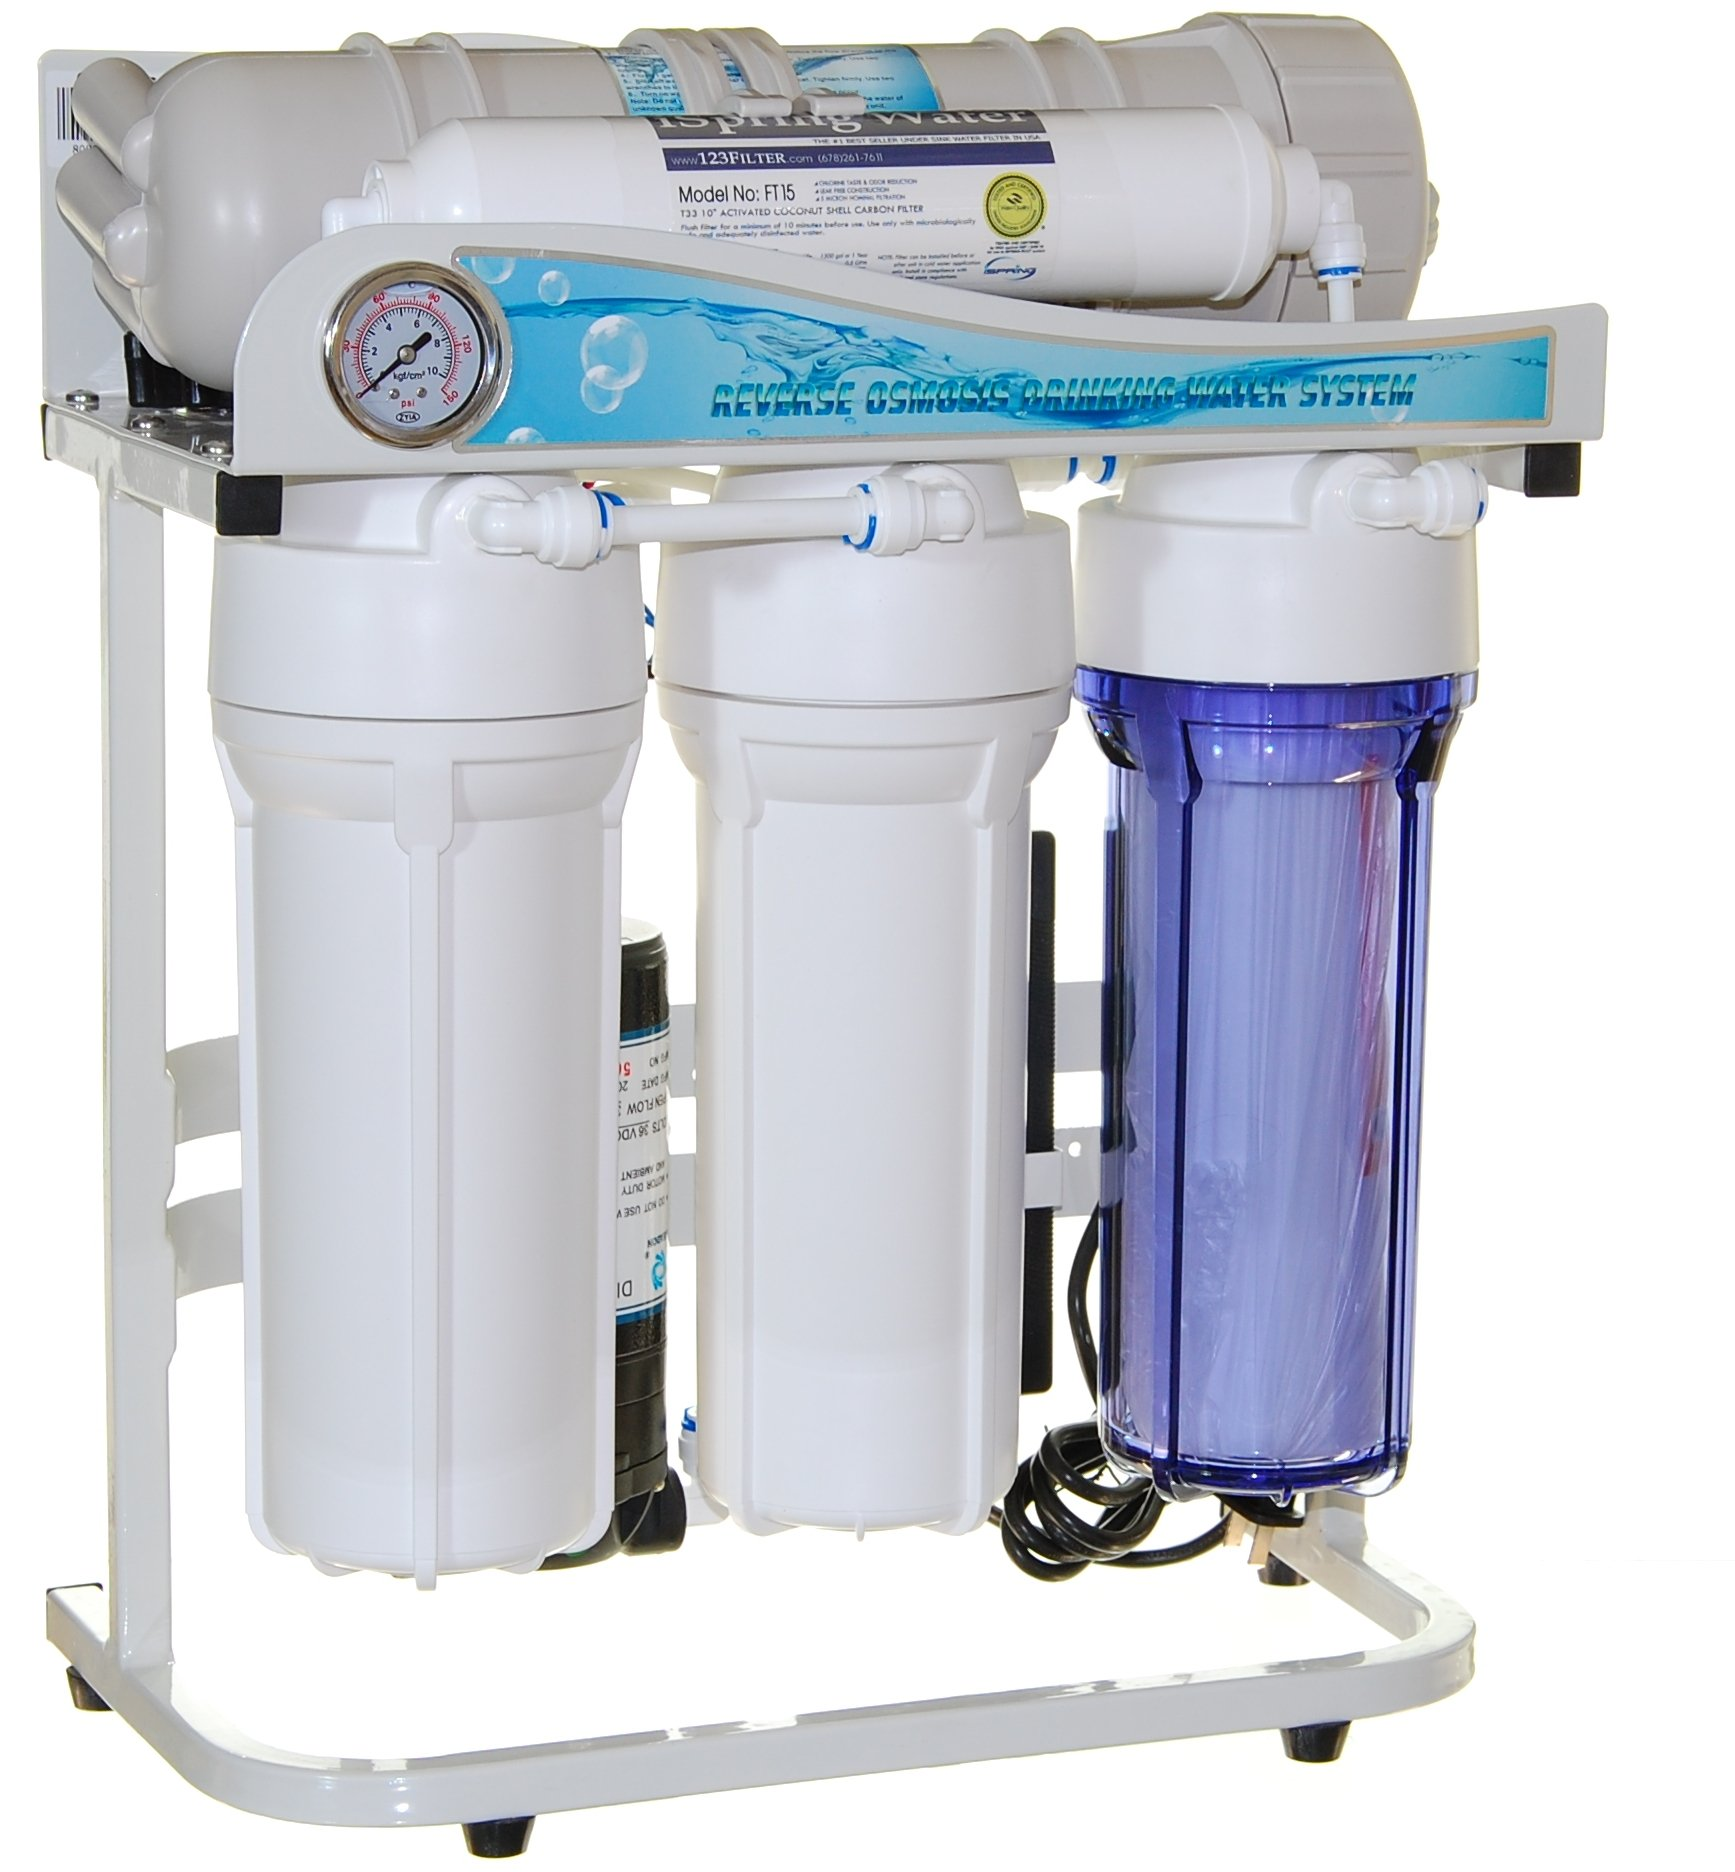 iSpring RCS5T - US Legendary - 500GPD Tankless Pumped Side-Flow Light Commercial 5-Stage Reverse Osmosis Water Filter System - 1:1 Waste Ratio